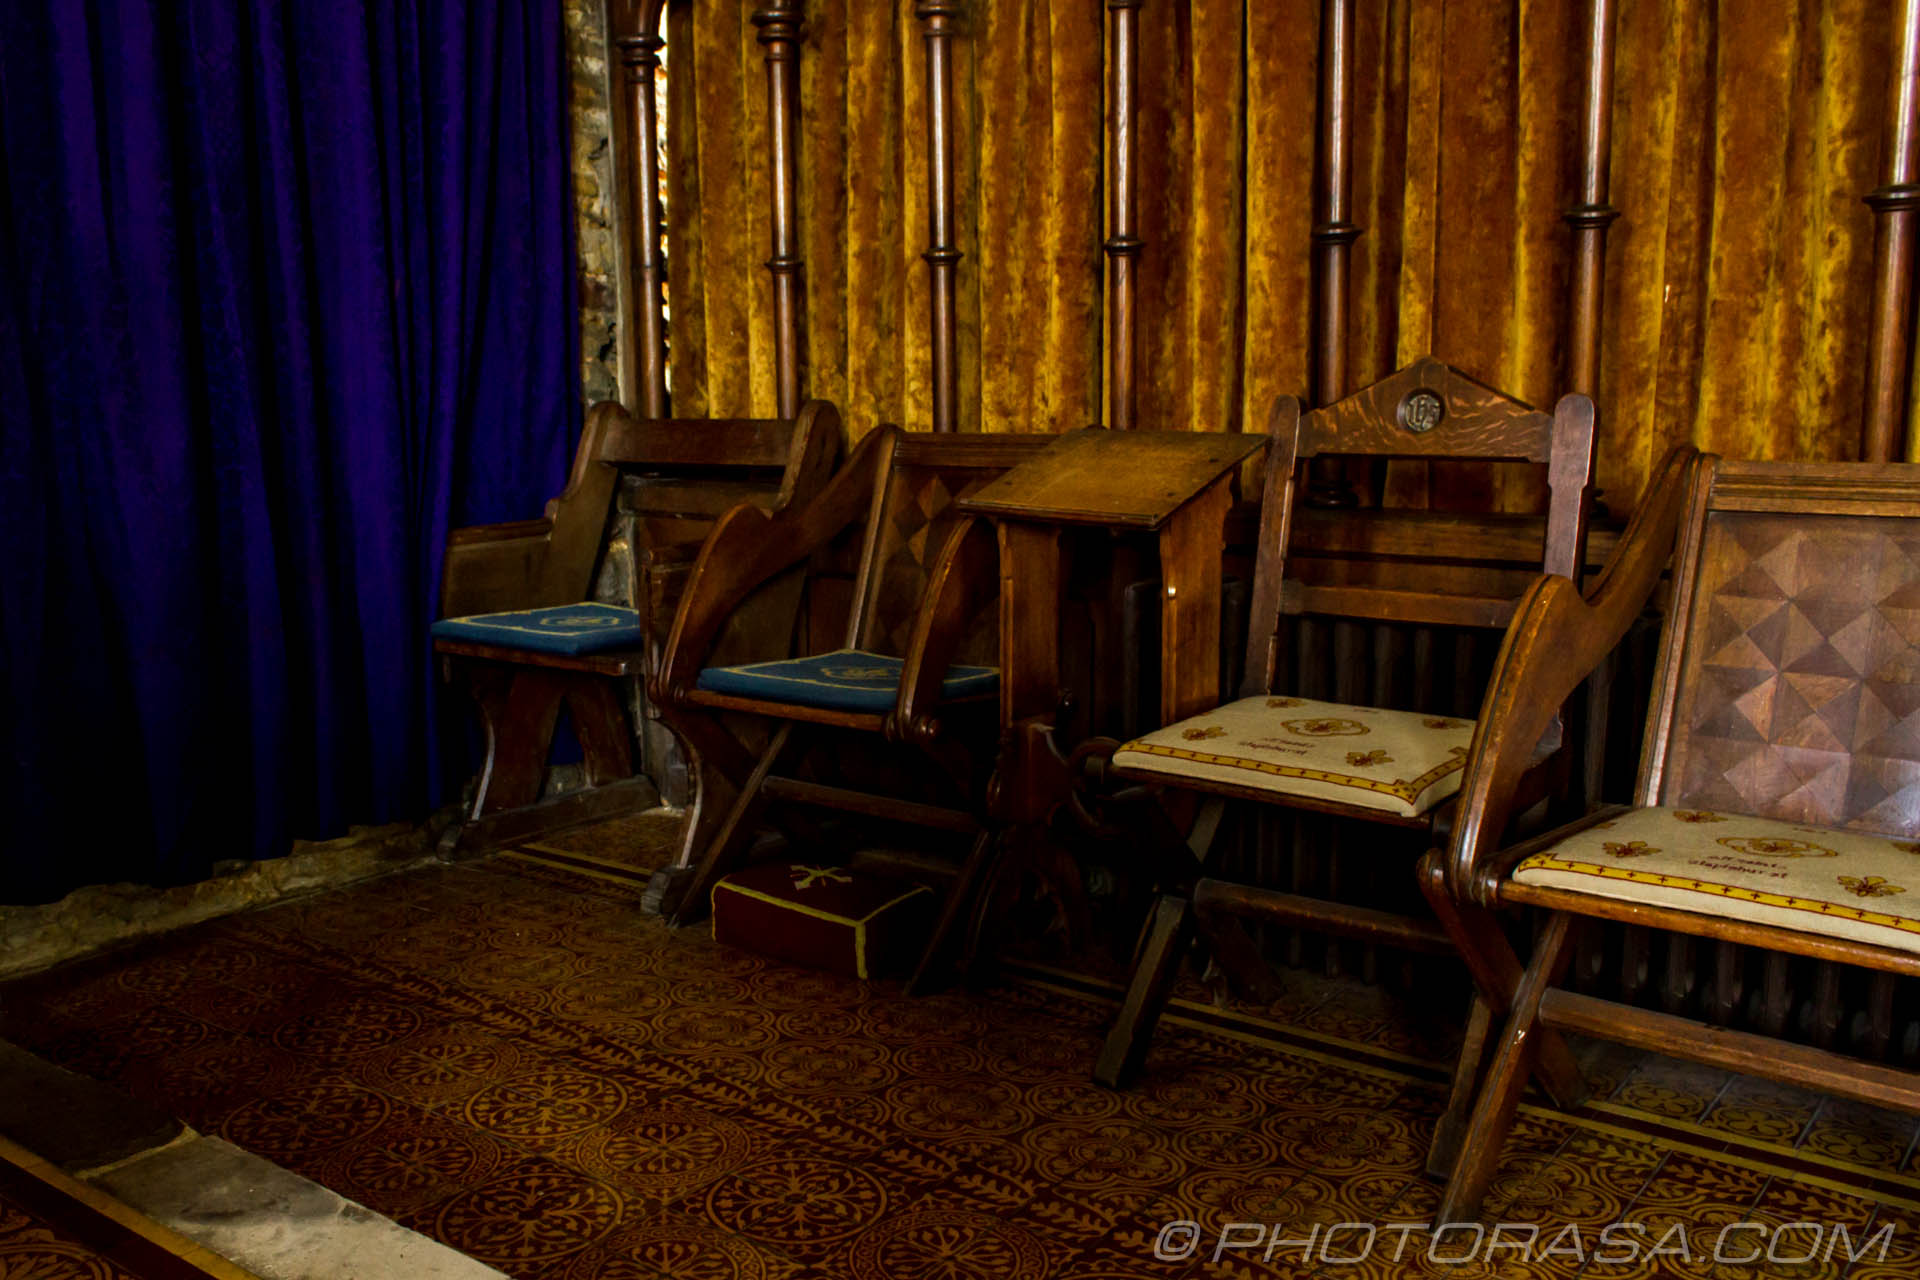 http://photorasa.com/saints-church-staplehurst-kent/chairs-and-purple-curtain/